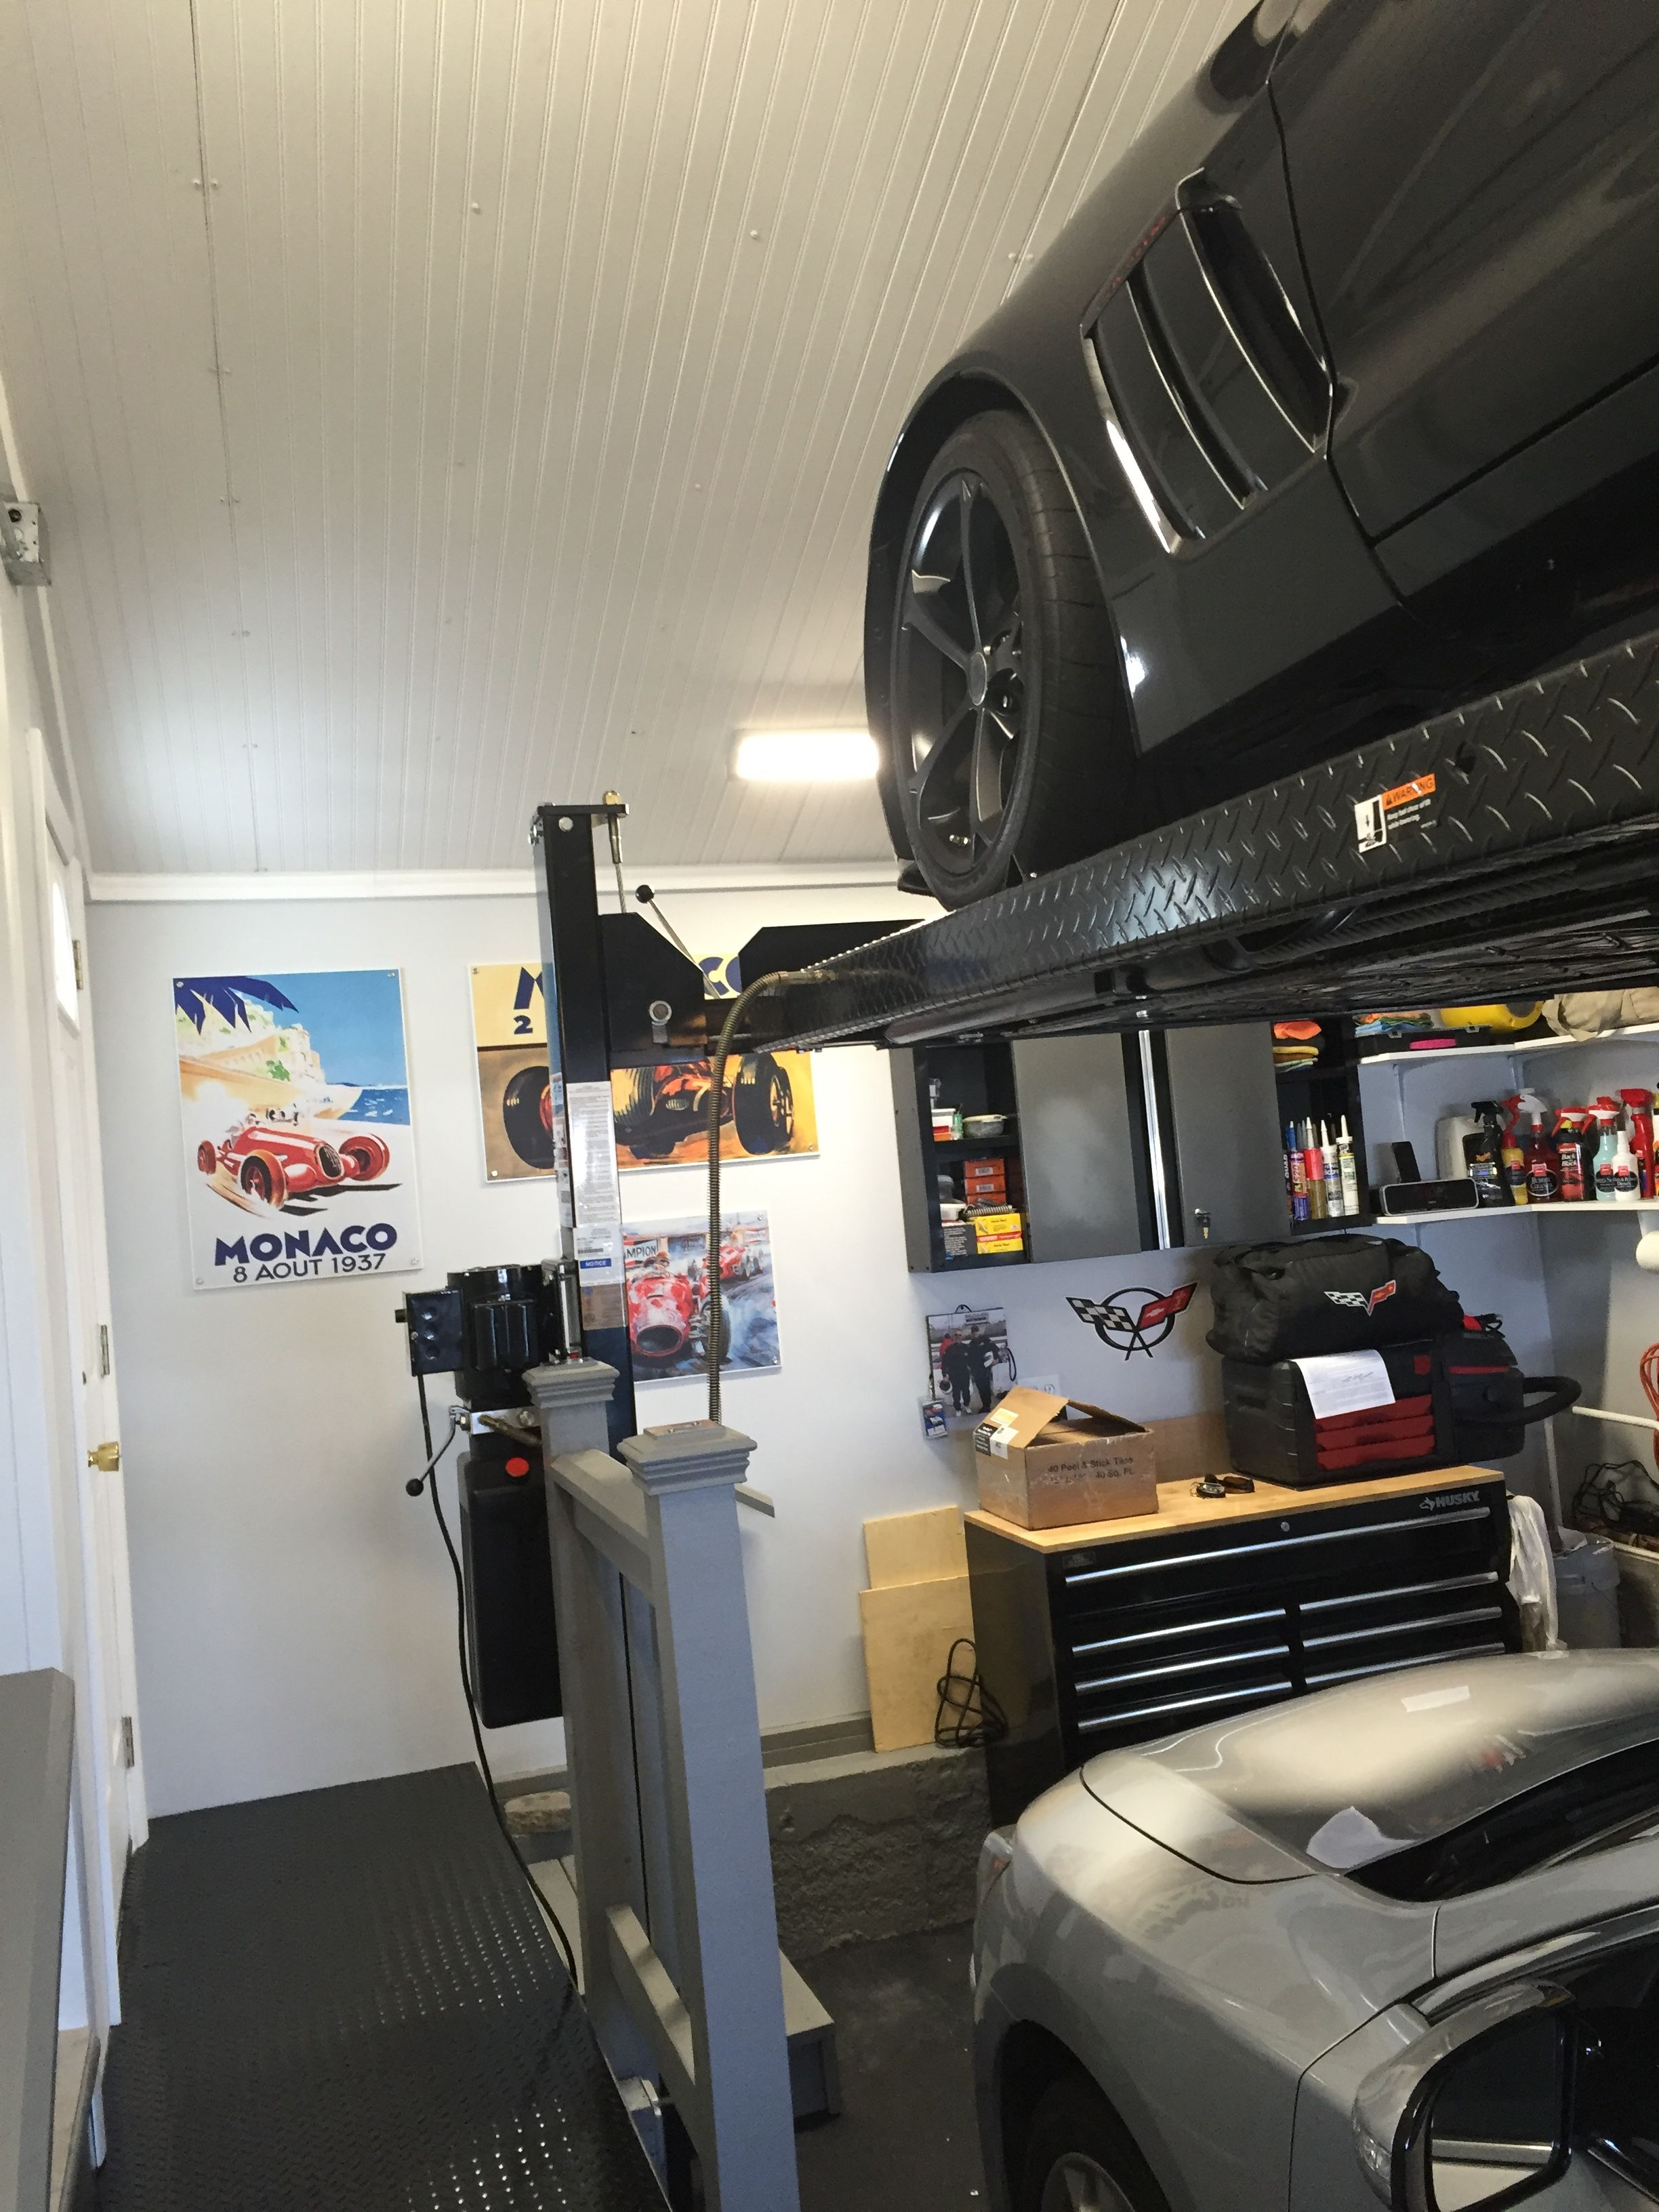 Car Lift In Garage Garage Car Lift Diy Man Cave Makeover Garage Car Lift 1 Car